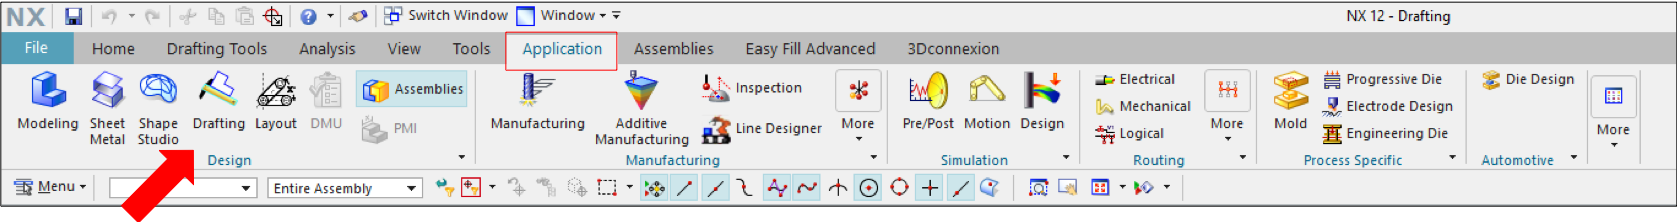 NX Drafting Application Ribbon Bar